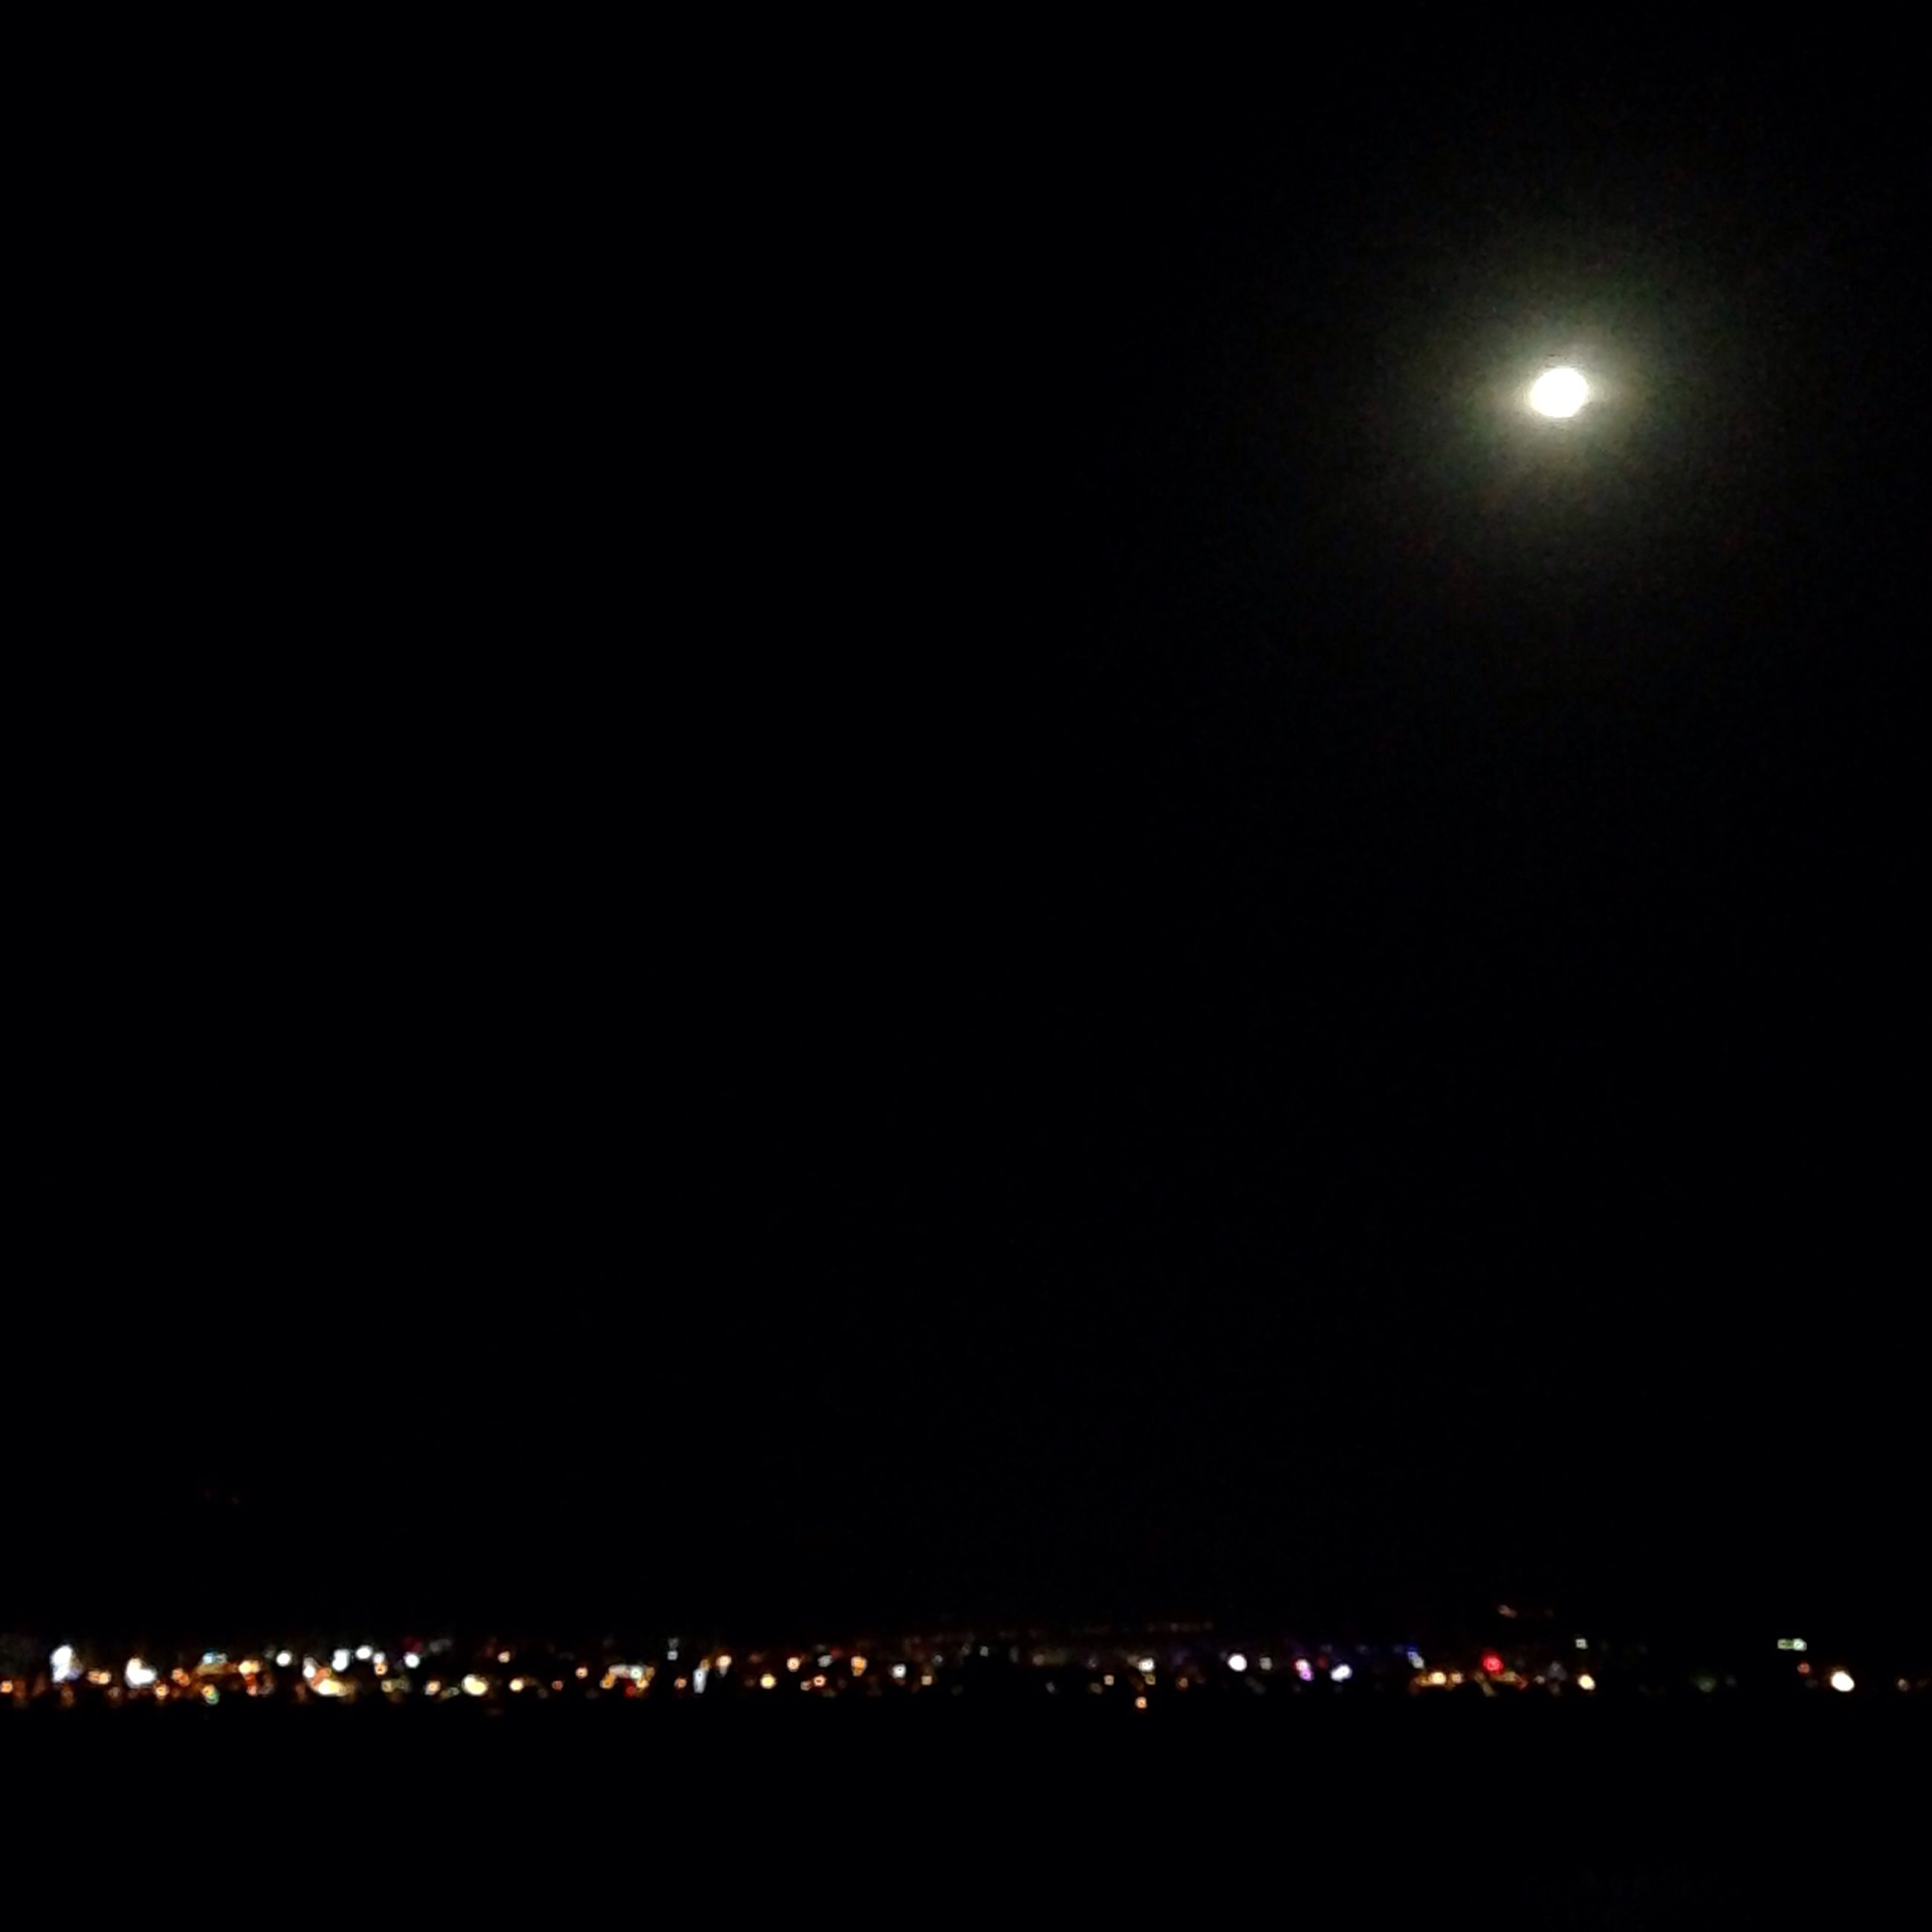 night, illuminated, moon, copy space, dark, clear sky, scenics, sky, glowing, light, full moon, beauty in nature, tranquil scene, light - natural phenomenon, city, cityscape, outdoors, tranquility, lighting equipment, nature